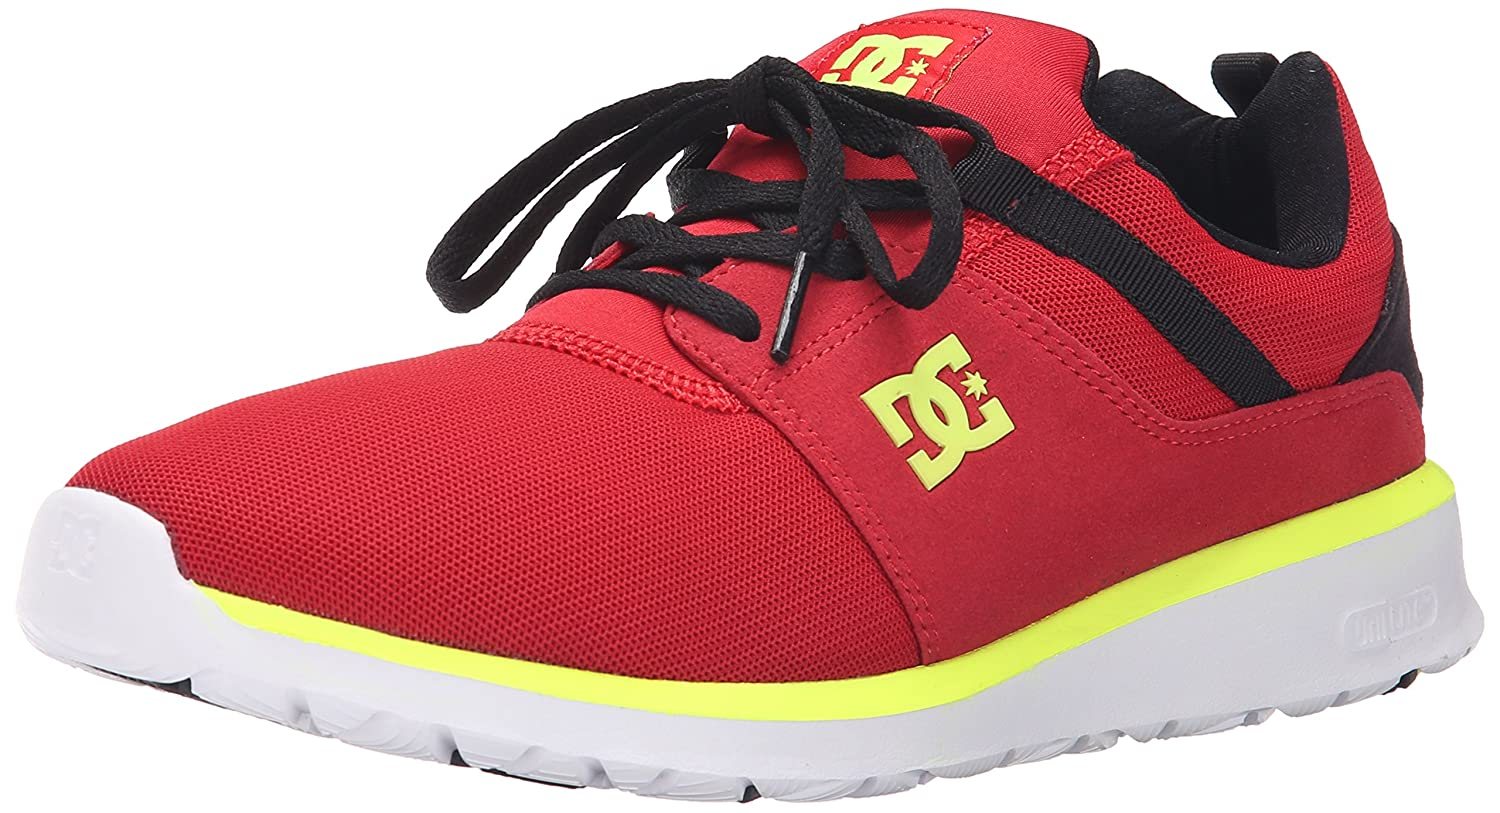 DC Men's Heathrow Casual Skate Shoe B00Z7MNW38 8.5 M US|Black/Red/Yellow